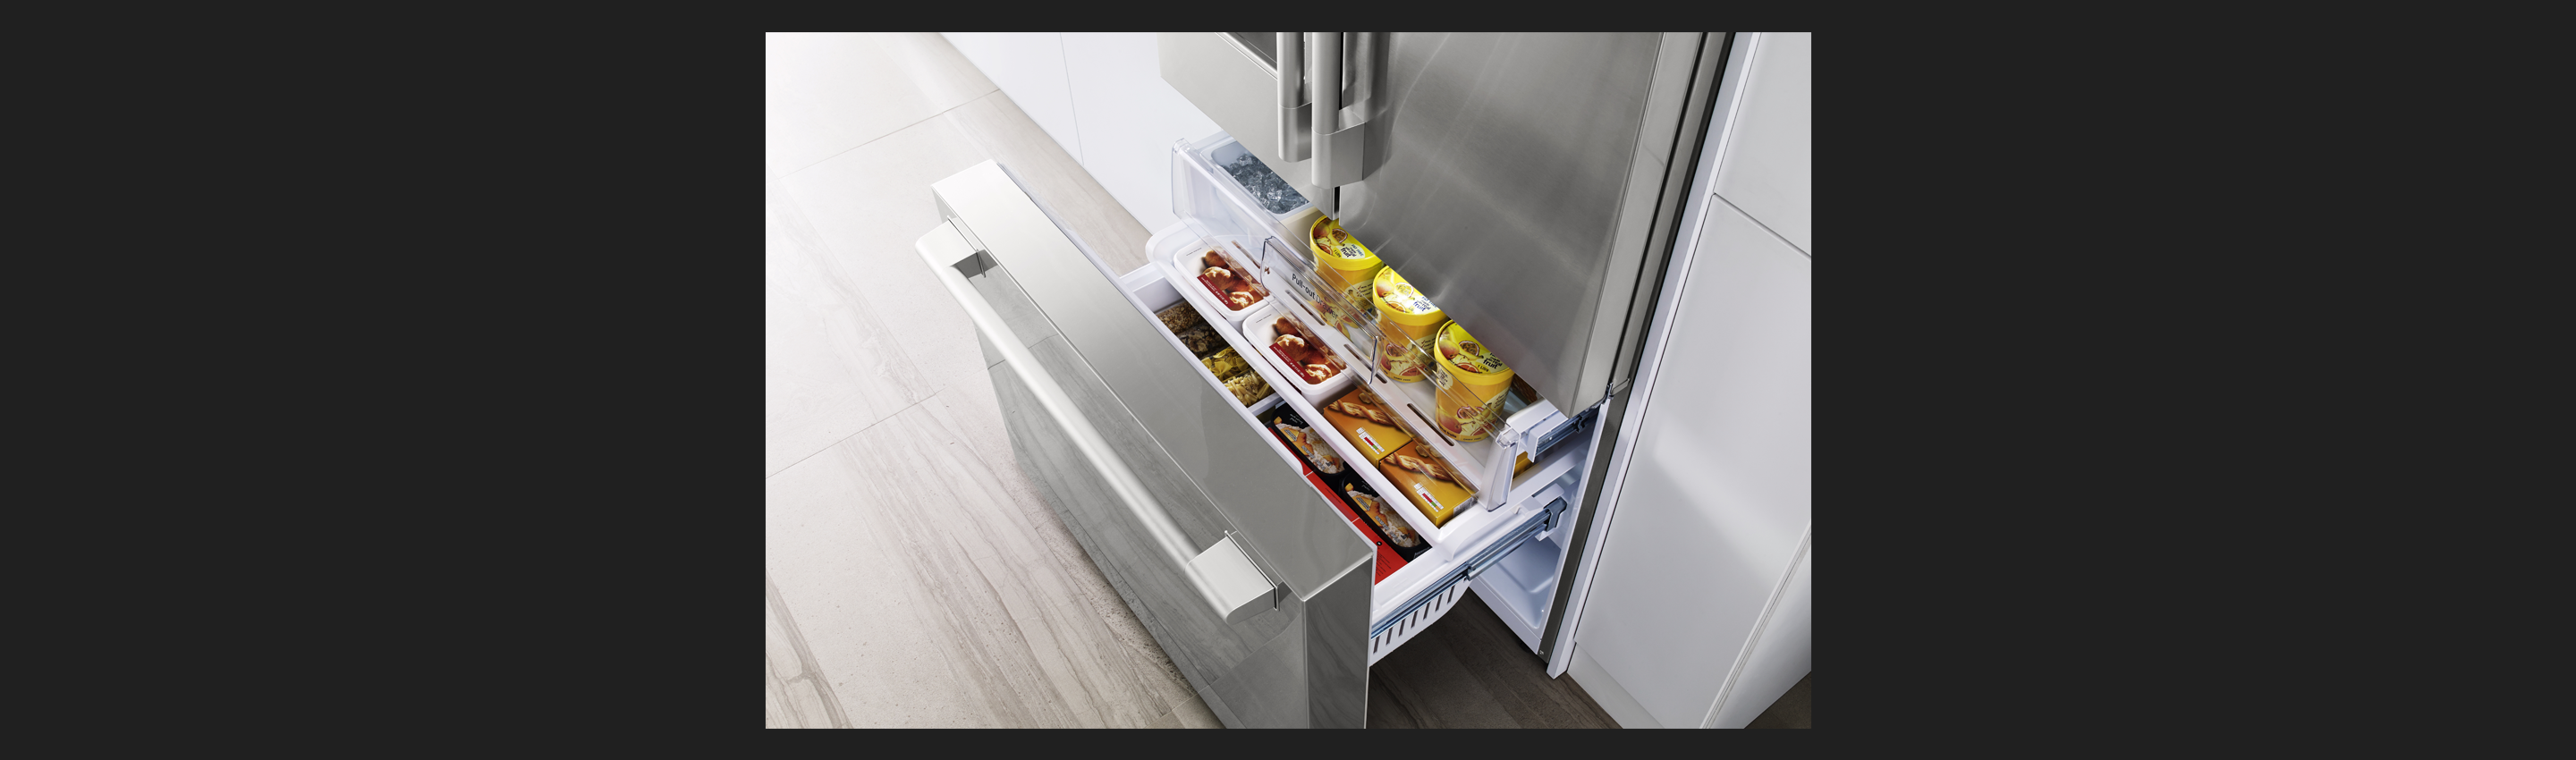 "36"" Counter-Depth French Door Refrigerator Freezer"